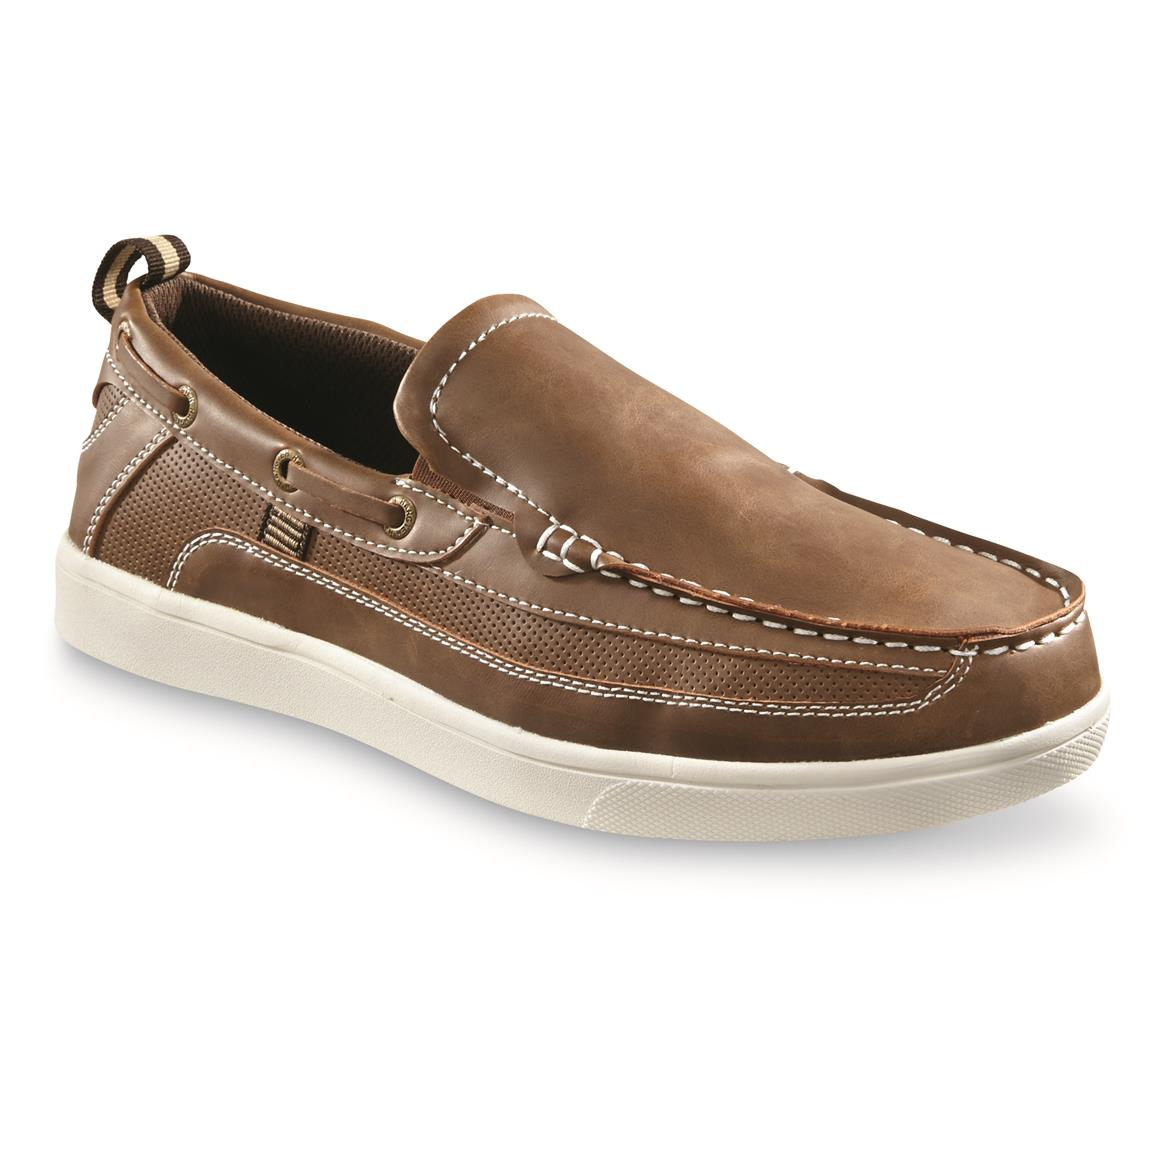 Hang Ten Men's Pier Slip-On Boat Shoes, Brown